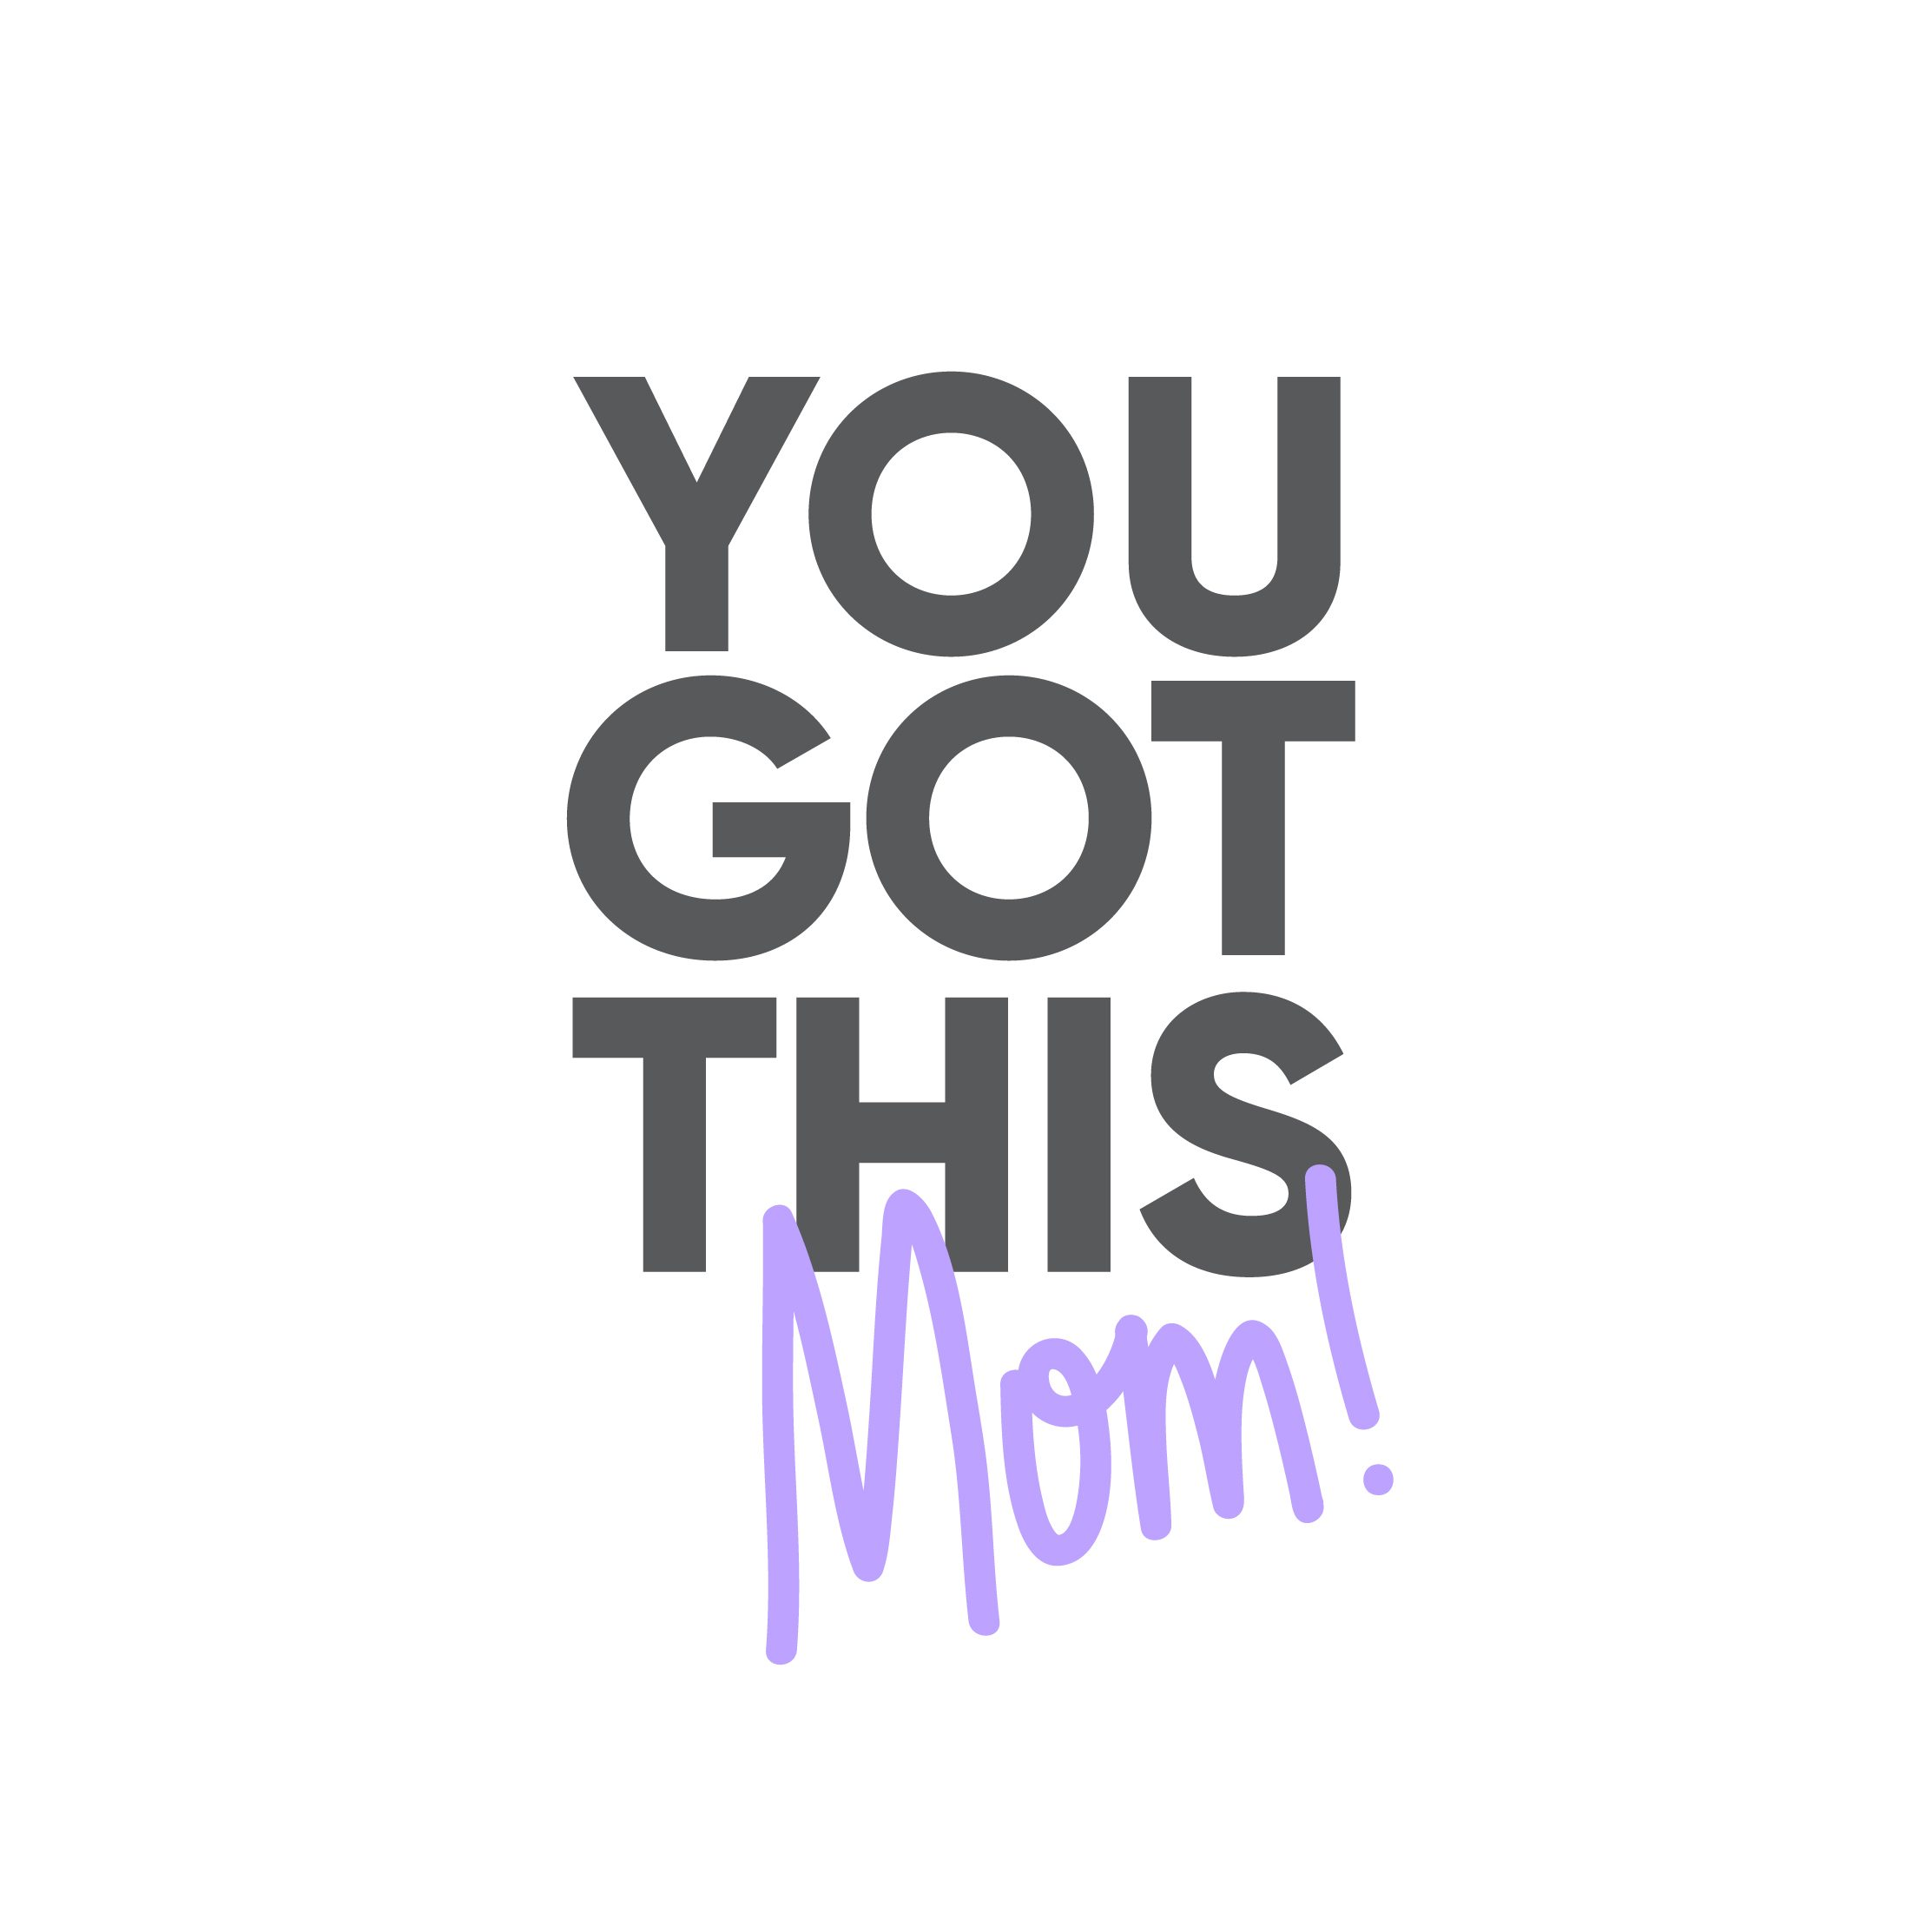 you got this mom!